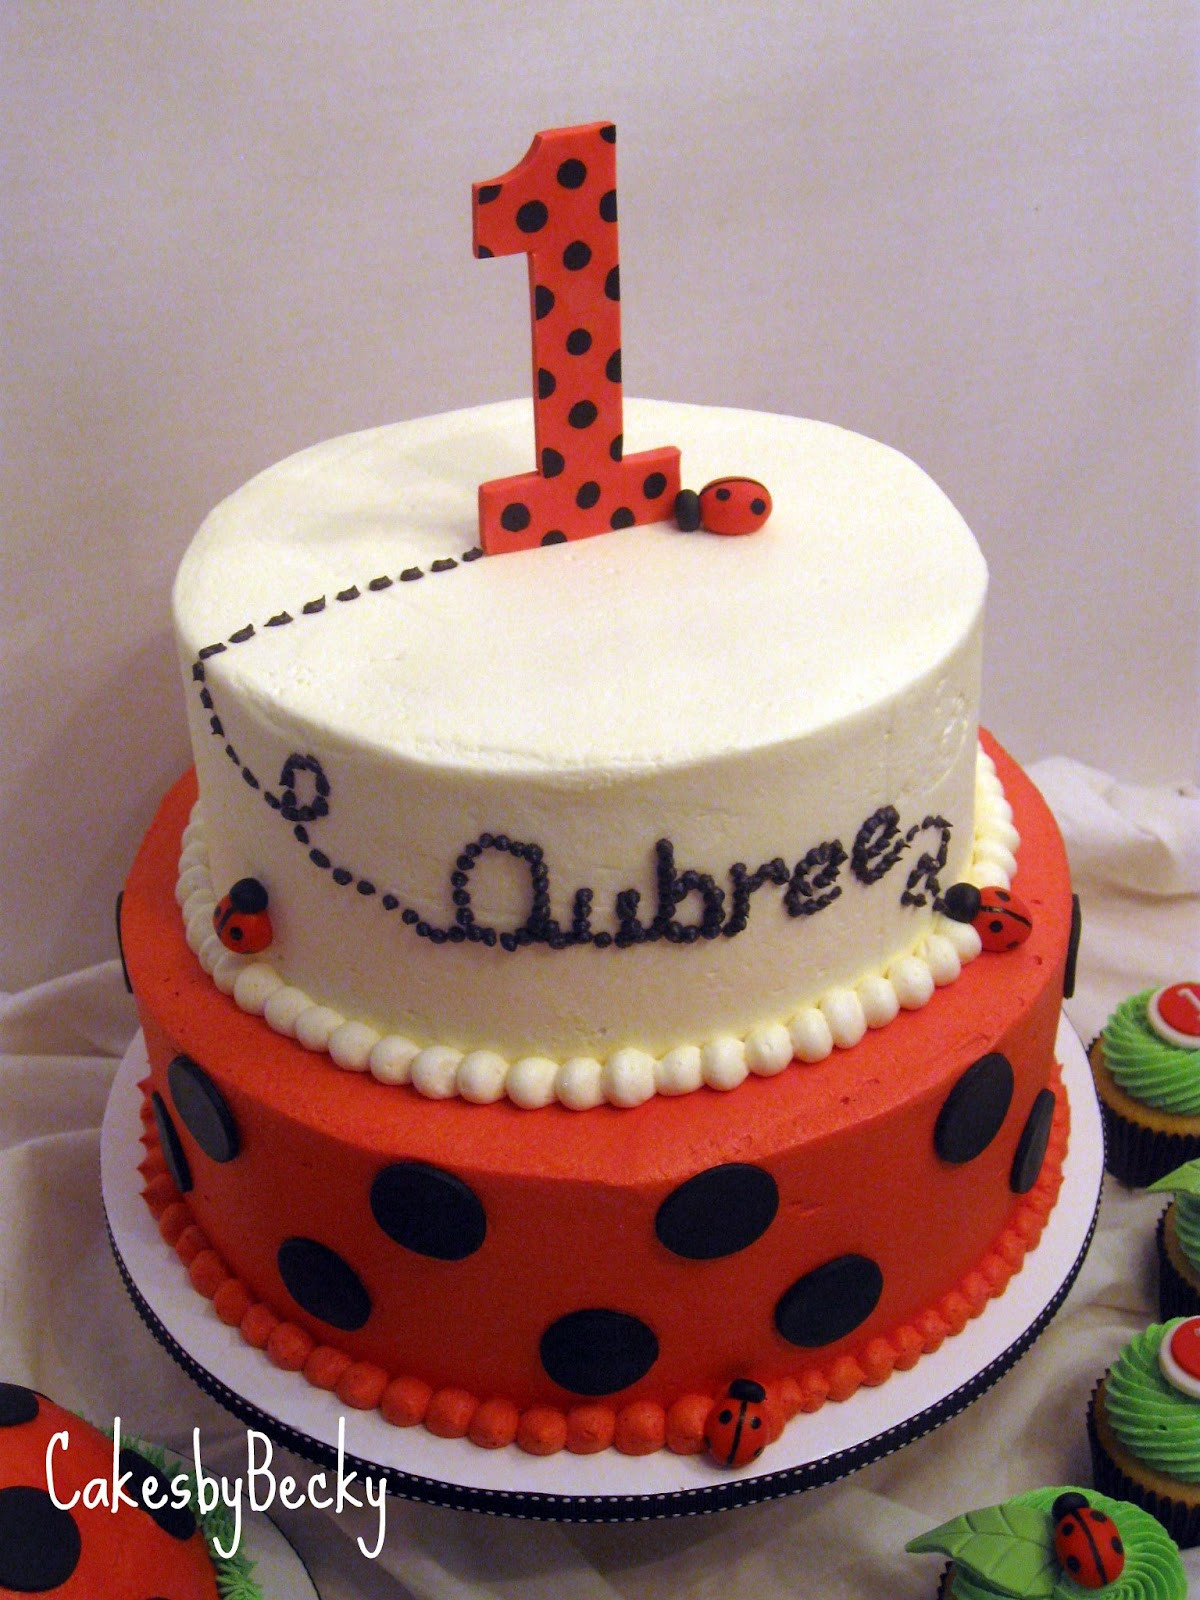 Best ideas about Ladybug Birthday Cake . Save or Pin Cakes by Becky Ladybug First Birthday Now.